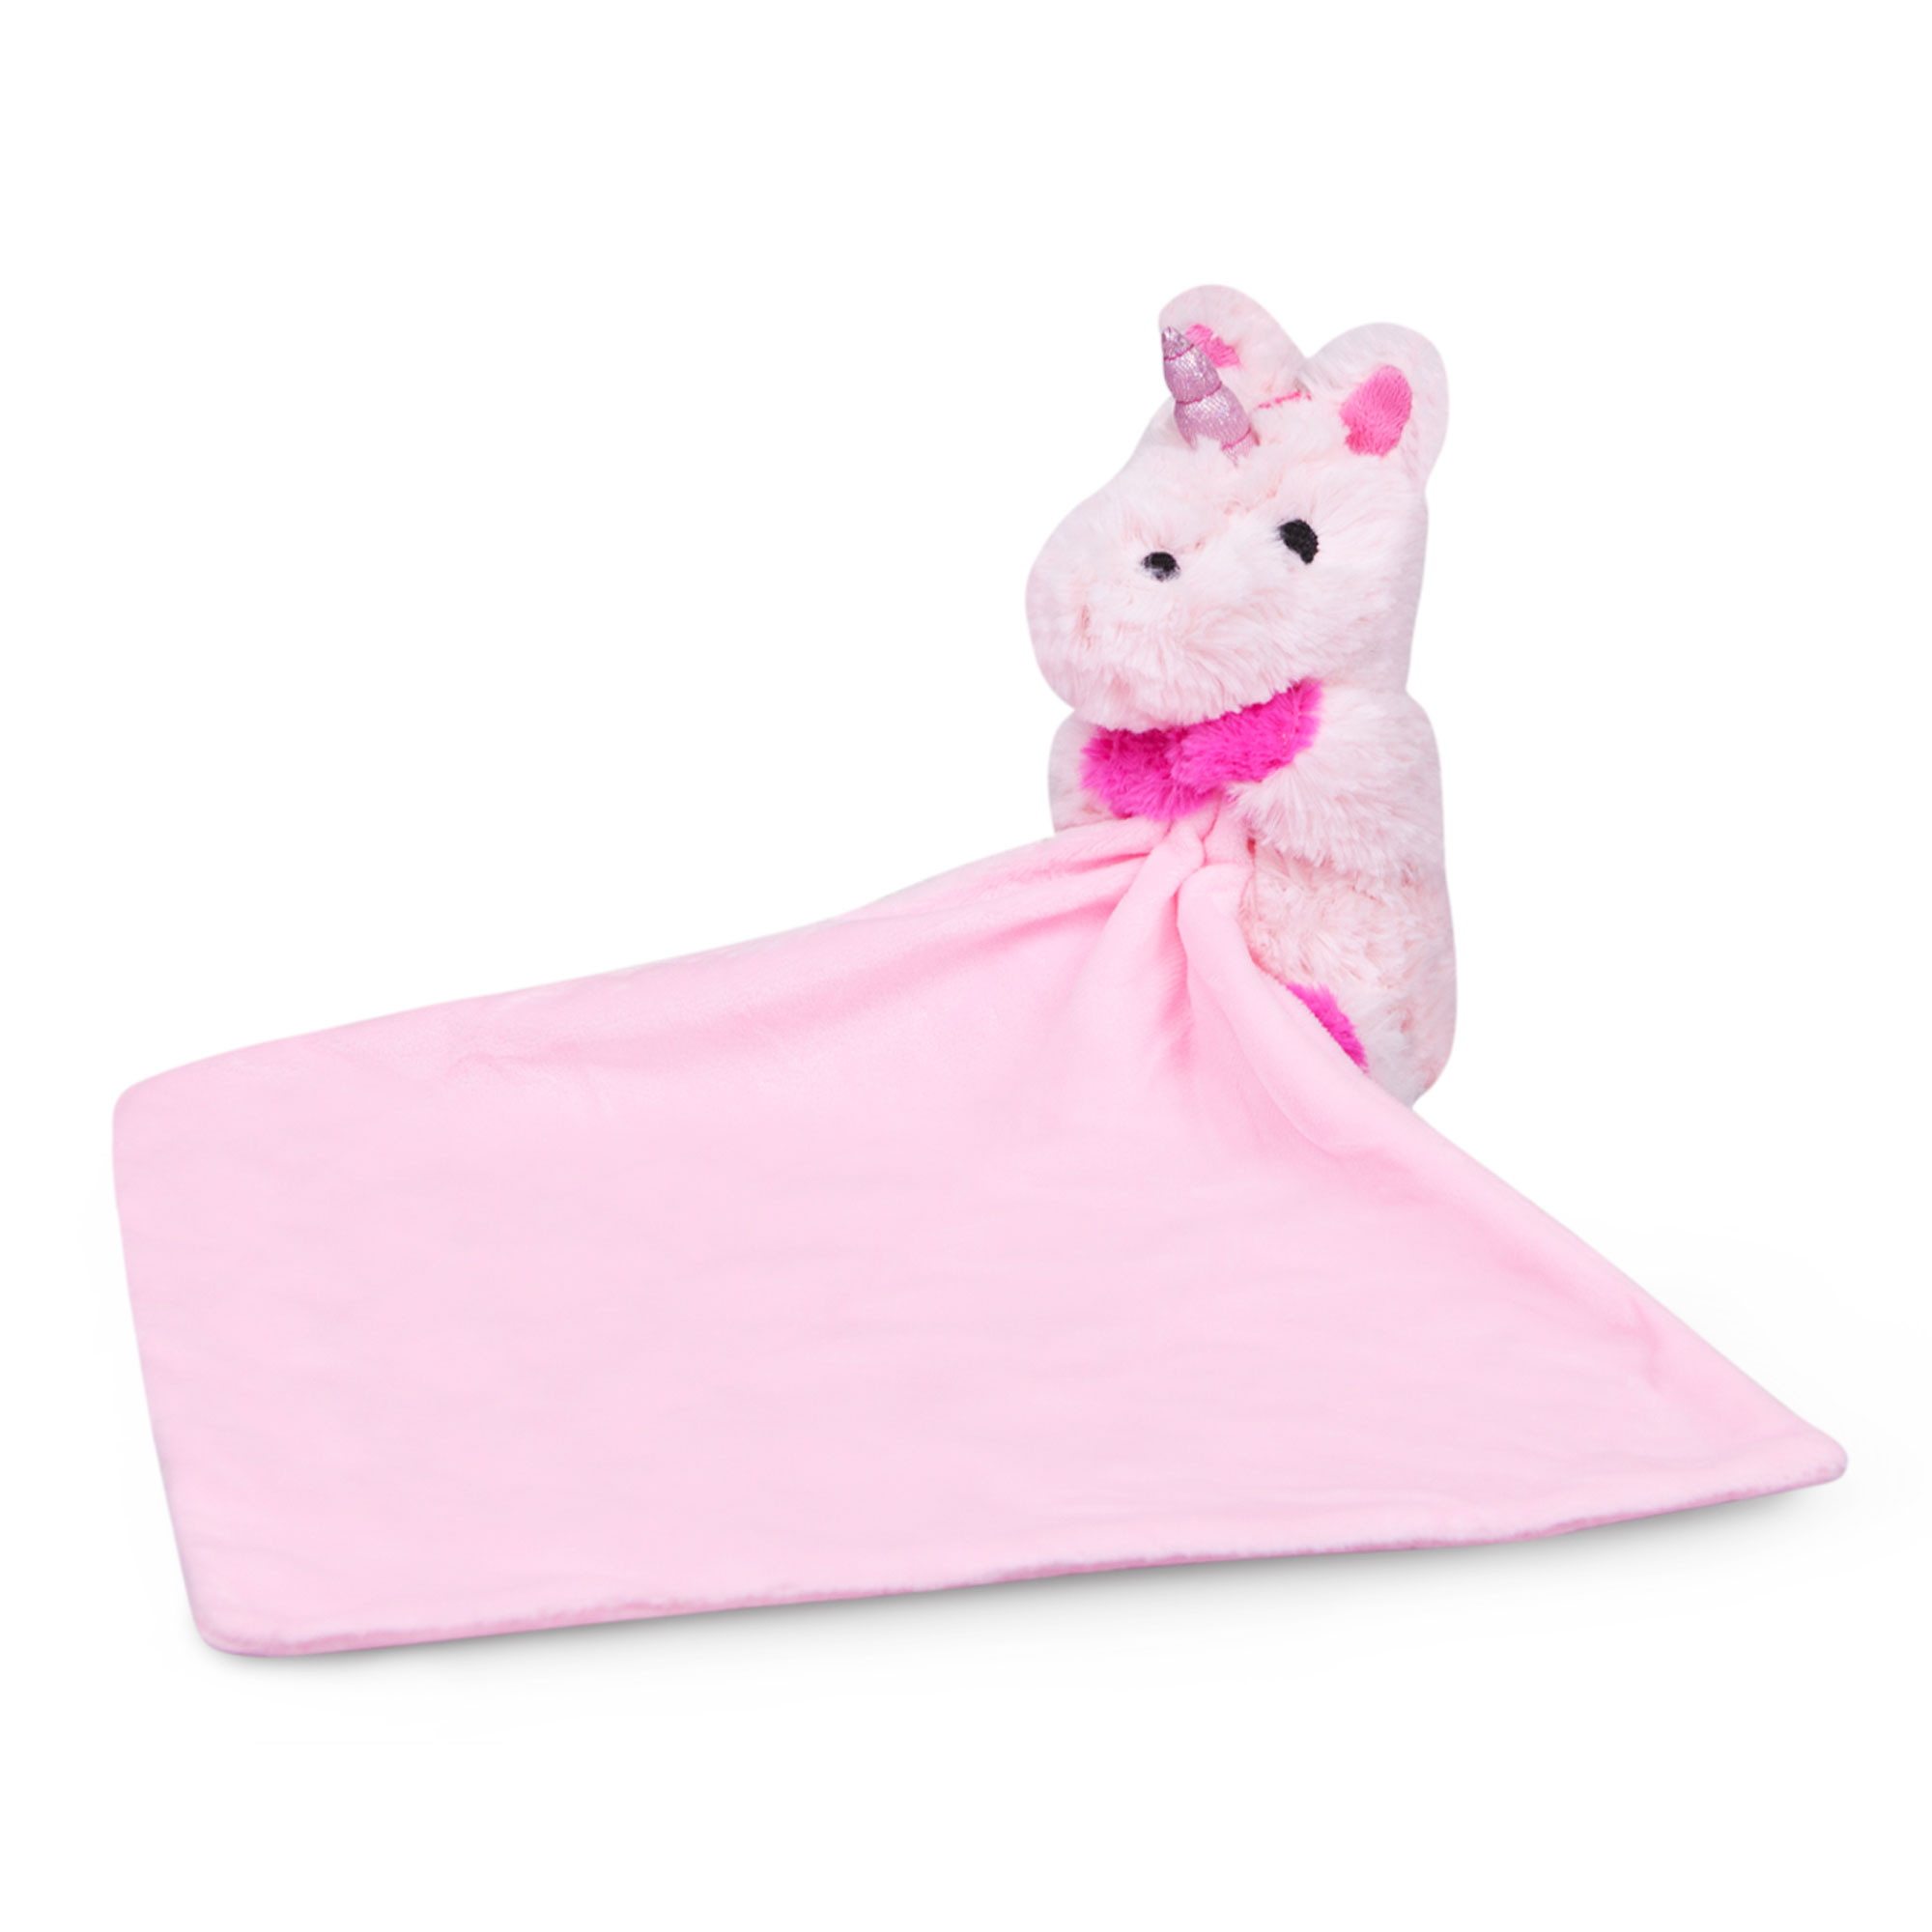 Waddle Pink Unicorn Baby Blanket Newborn Gift Plush Toy Stuffed Animal Rattle by Waddle and Friends